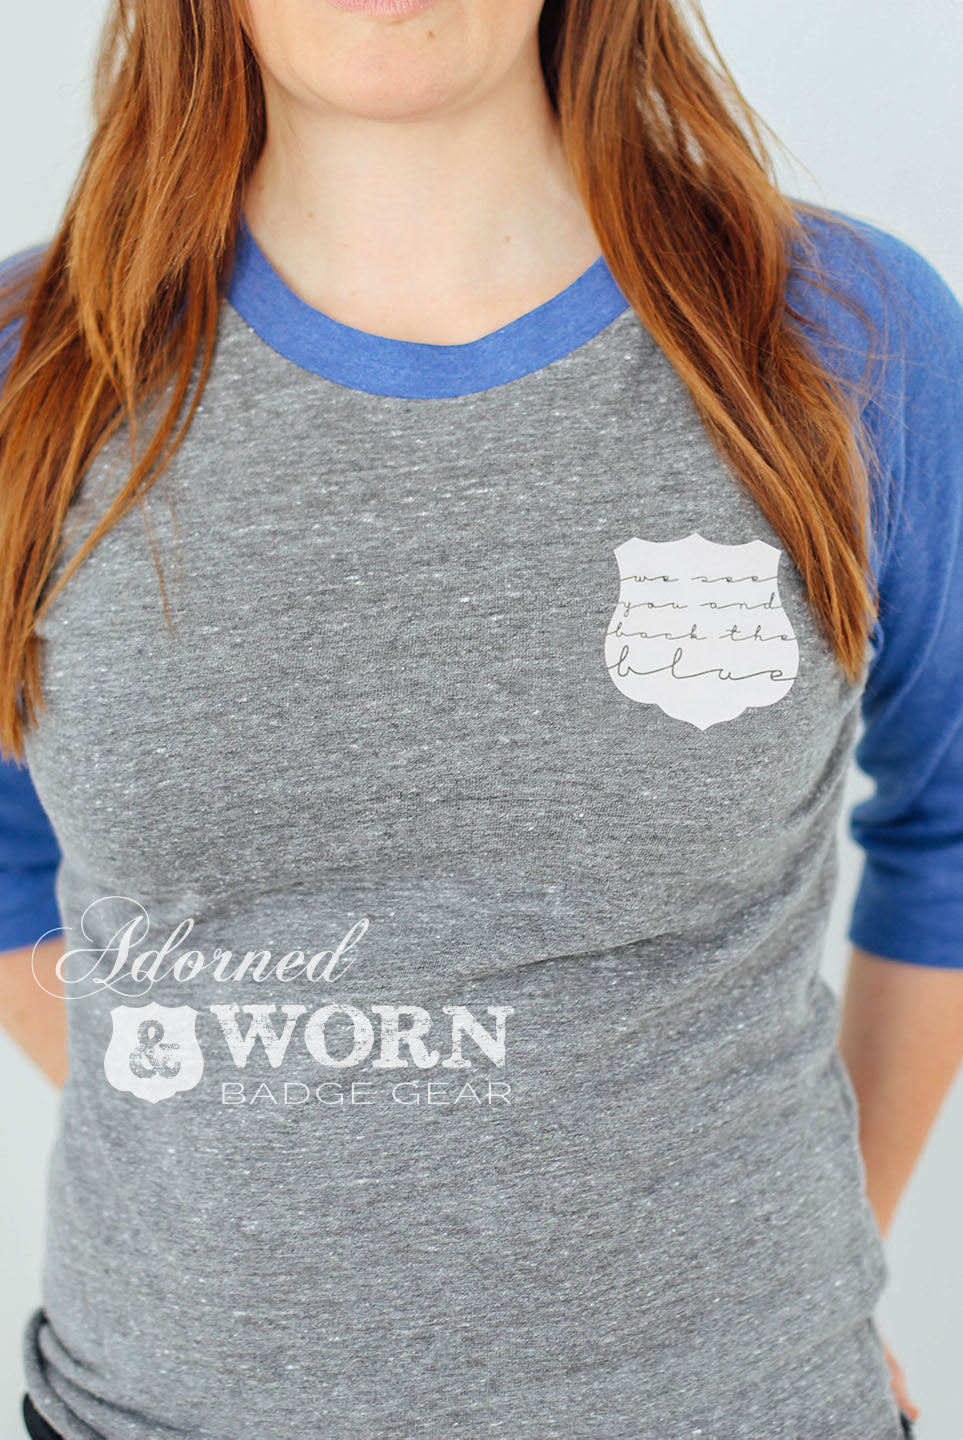 We See You and Back The Blue | Baseball Raglan